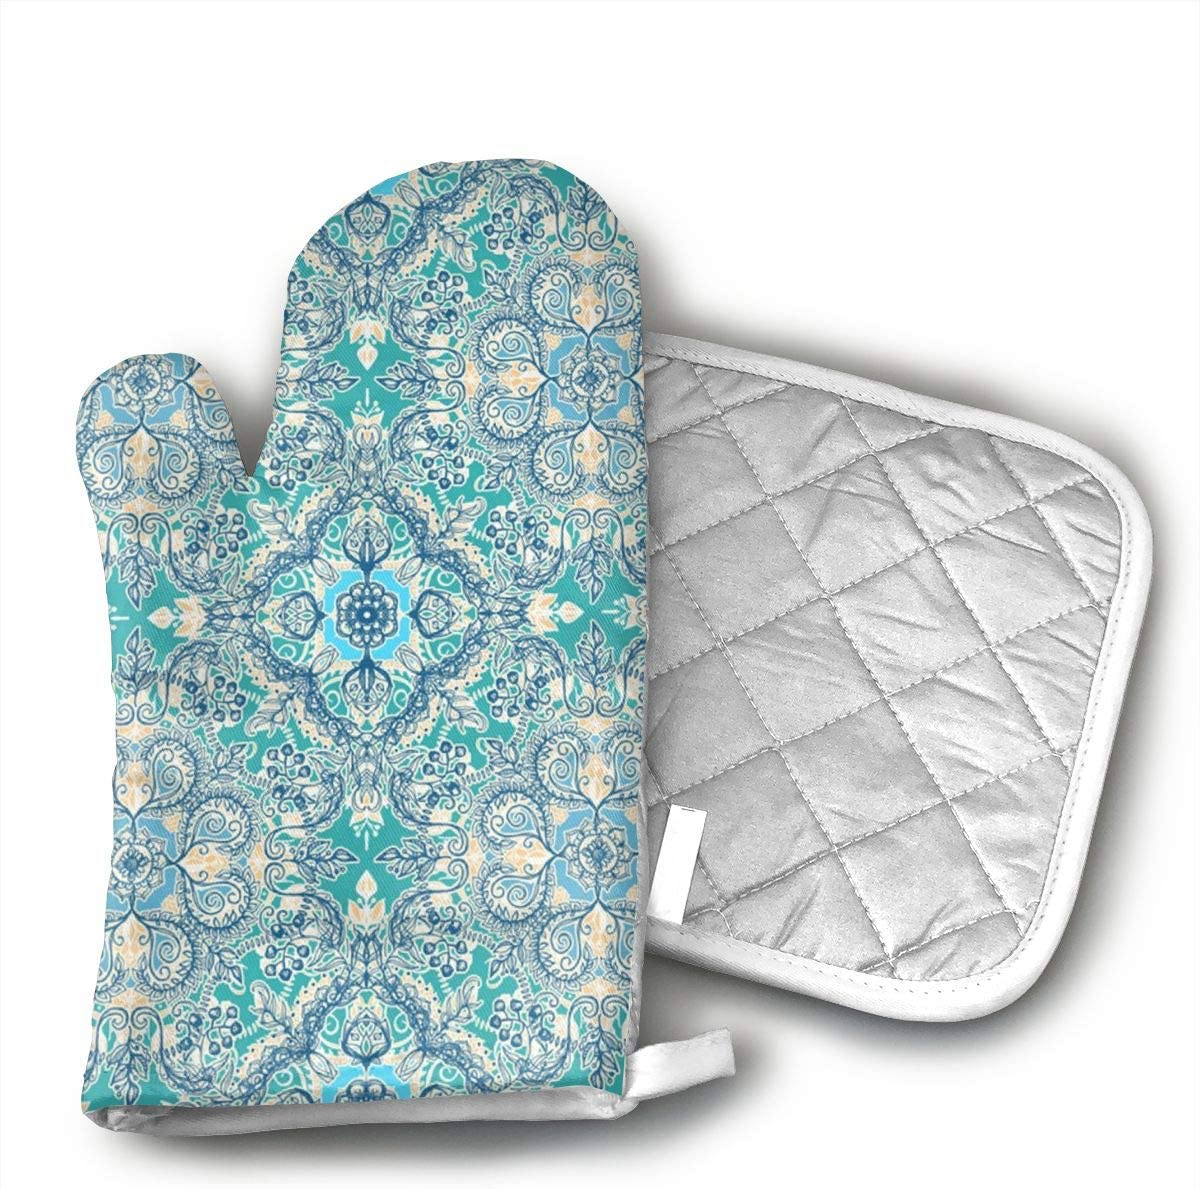 Floral in Teal Cream and Blue Oven Mitts and Pot Holders Set of for Kitchen Set with Cotton Non-Slip Grip